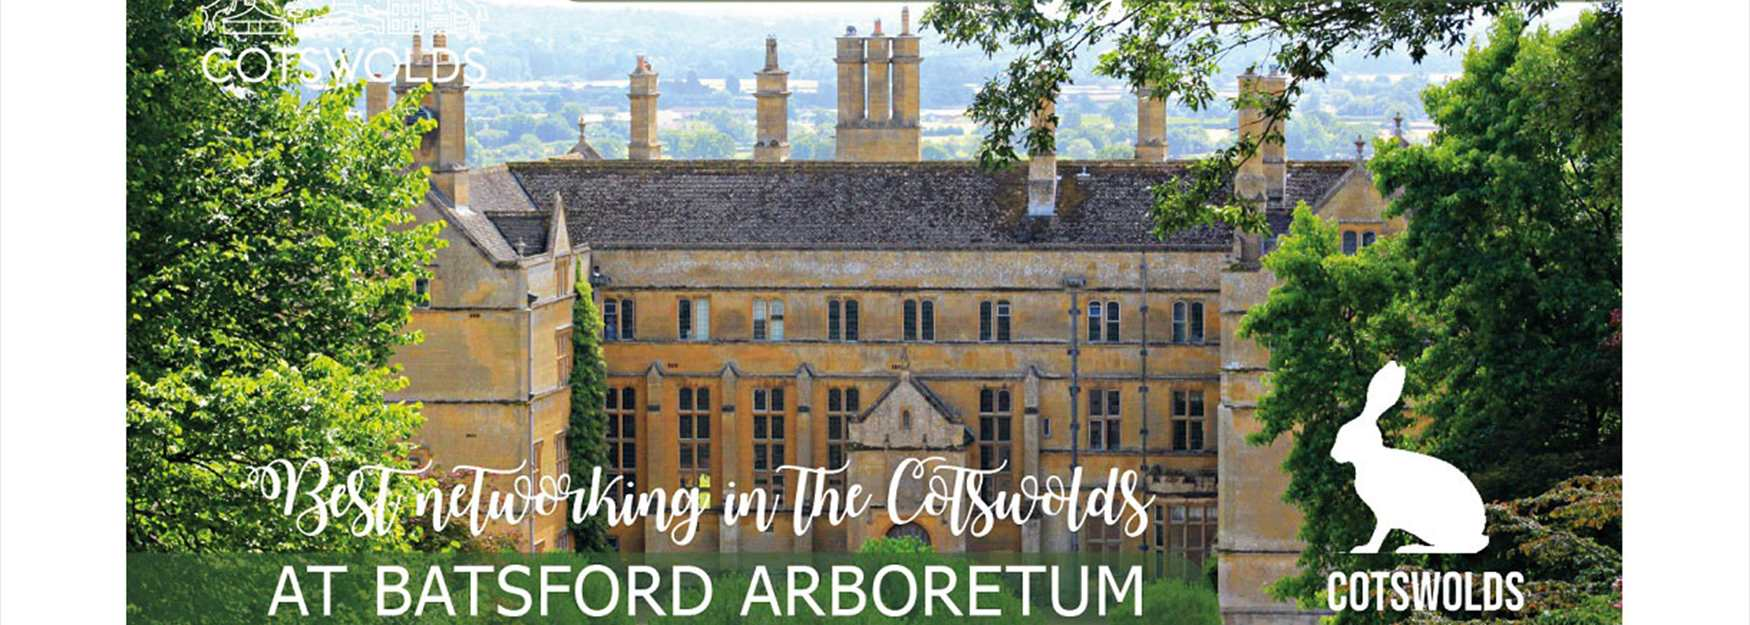 Join us at our next Cotswolds Super Huddle on Tuesday 2 April from 11.30am onwards at Batsford Aboretum